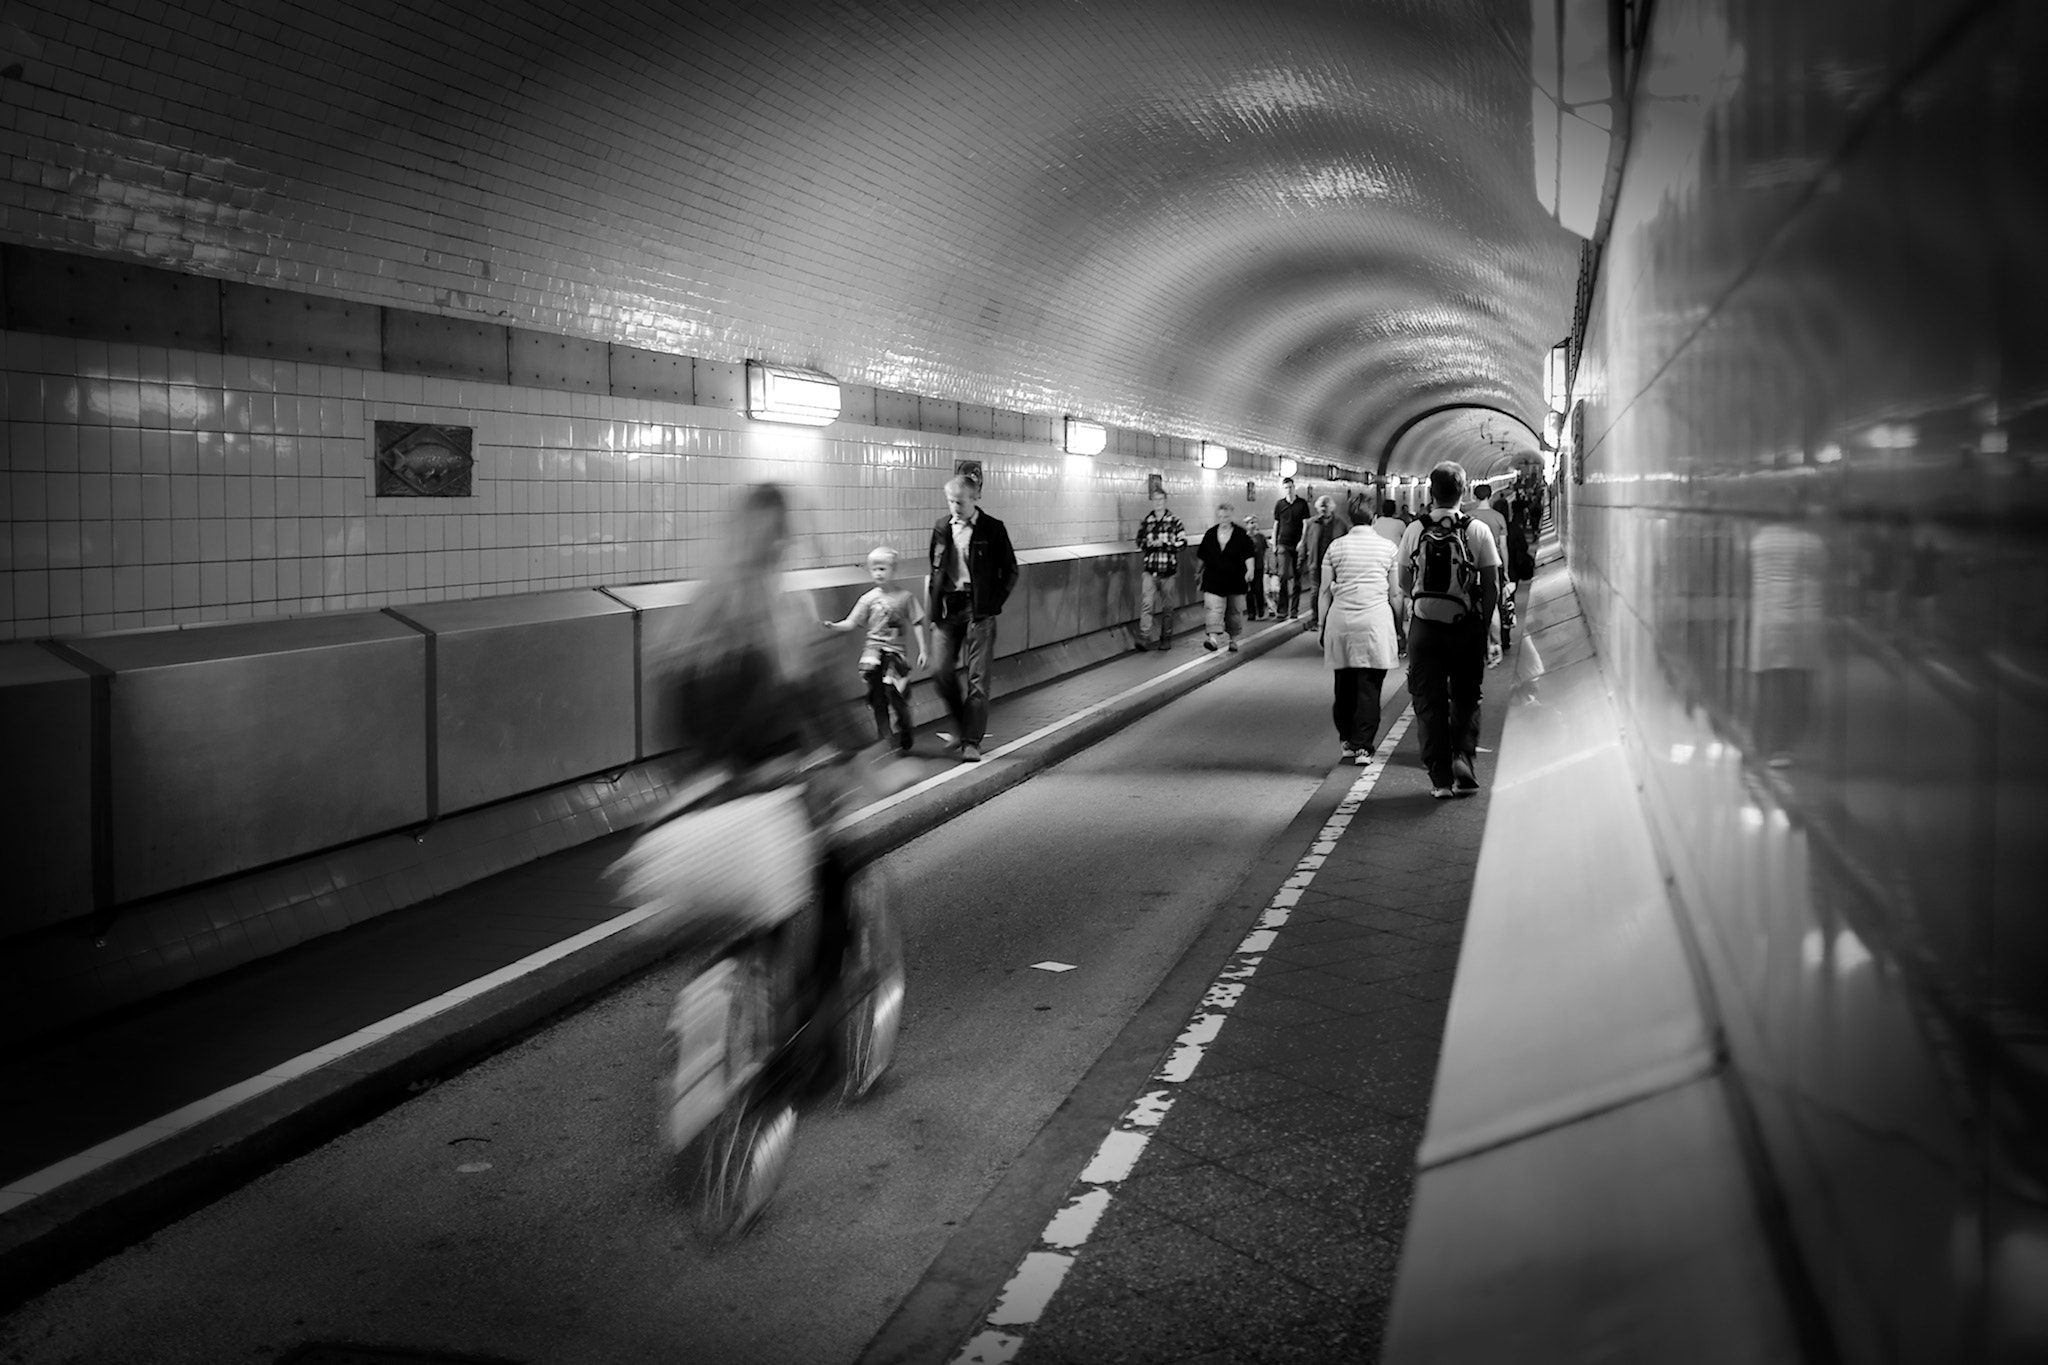 Photograph Rushing the Tunnel by Michael Scheinost on 500px